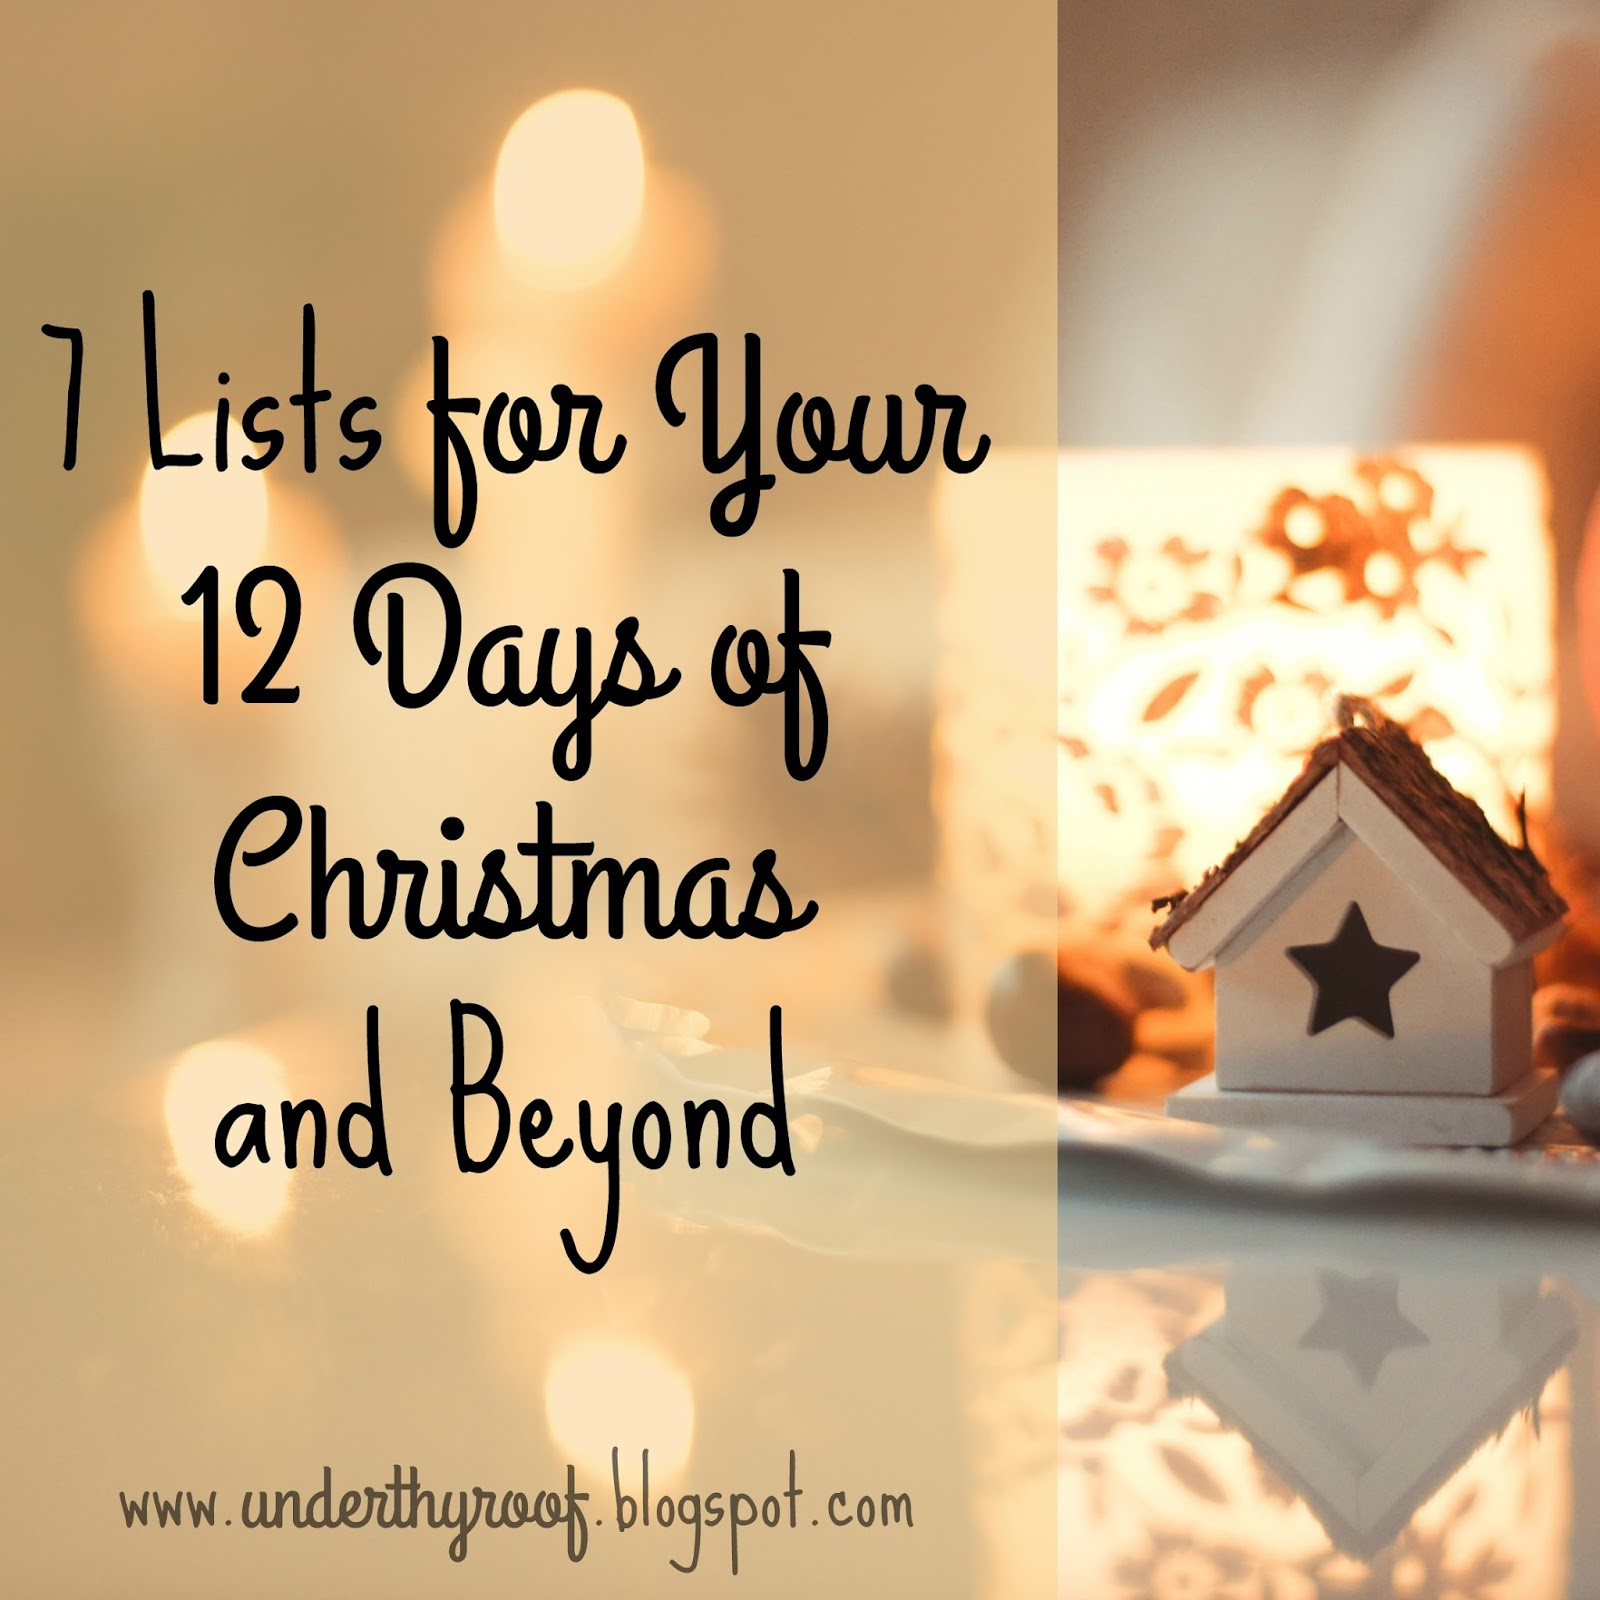 12 Days Of Christmas List.Under Thy Roof 7 Lists For Your 12 Days Of Christmas And Beyond